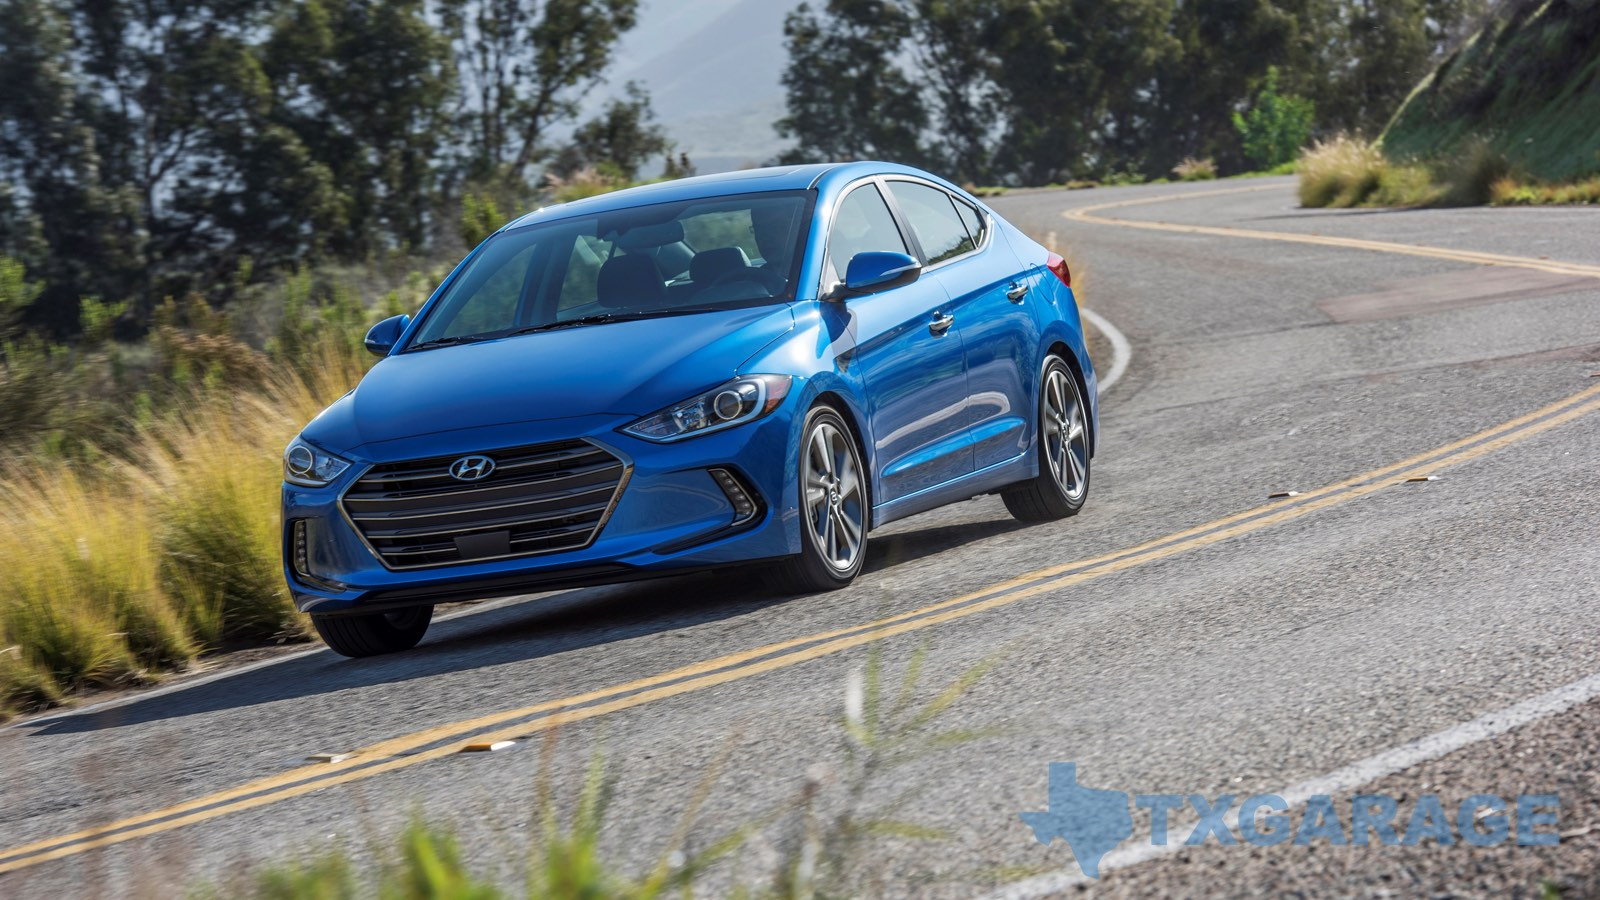 2017 Hyundai Elantra reviewed by Steve Kursar - txgarage